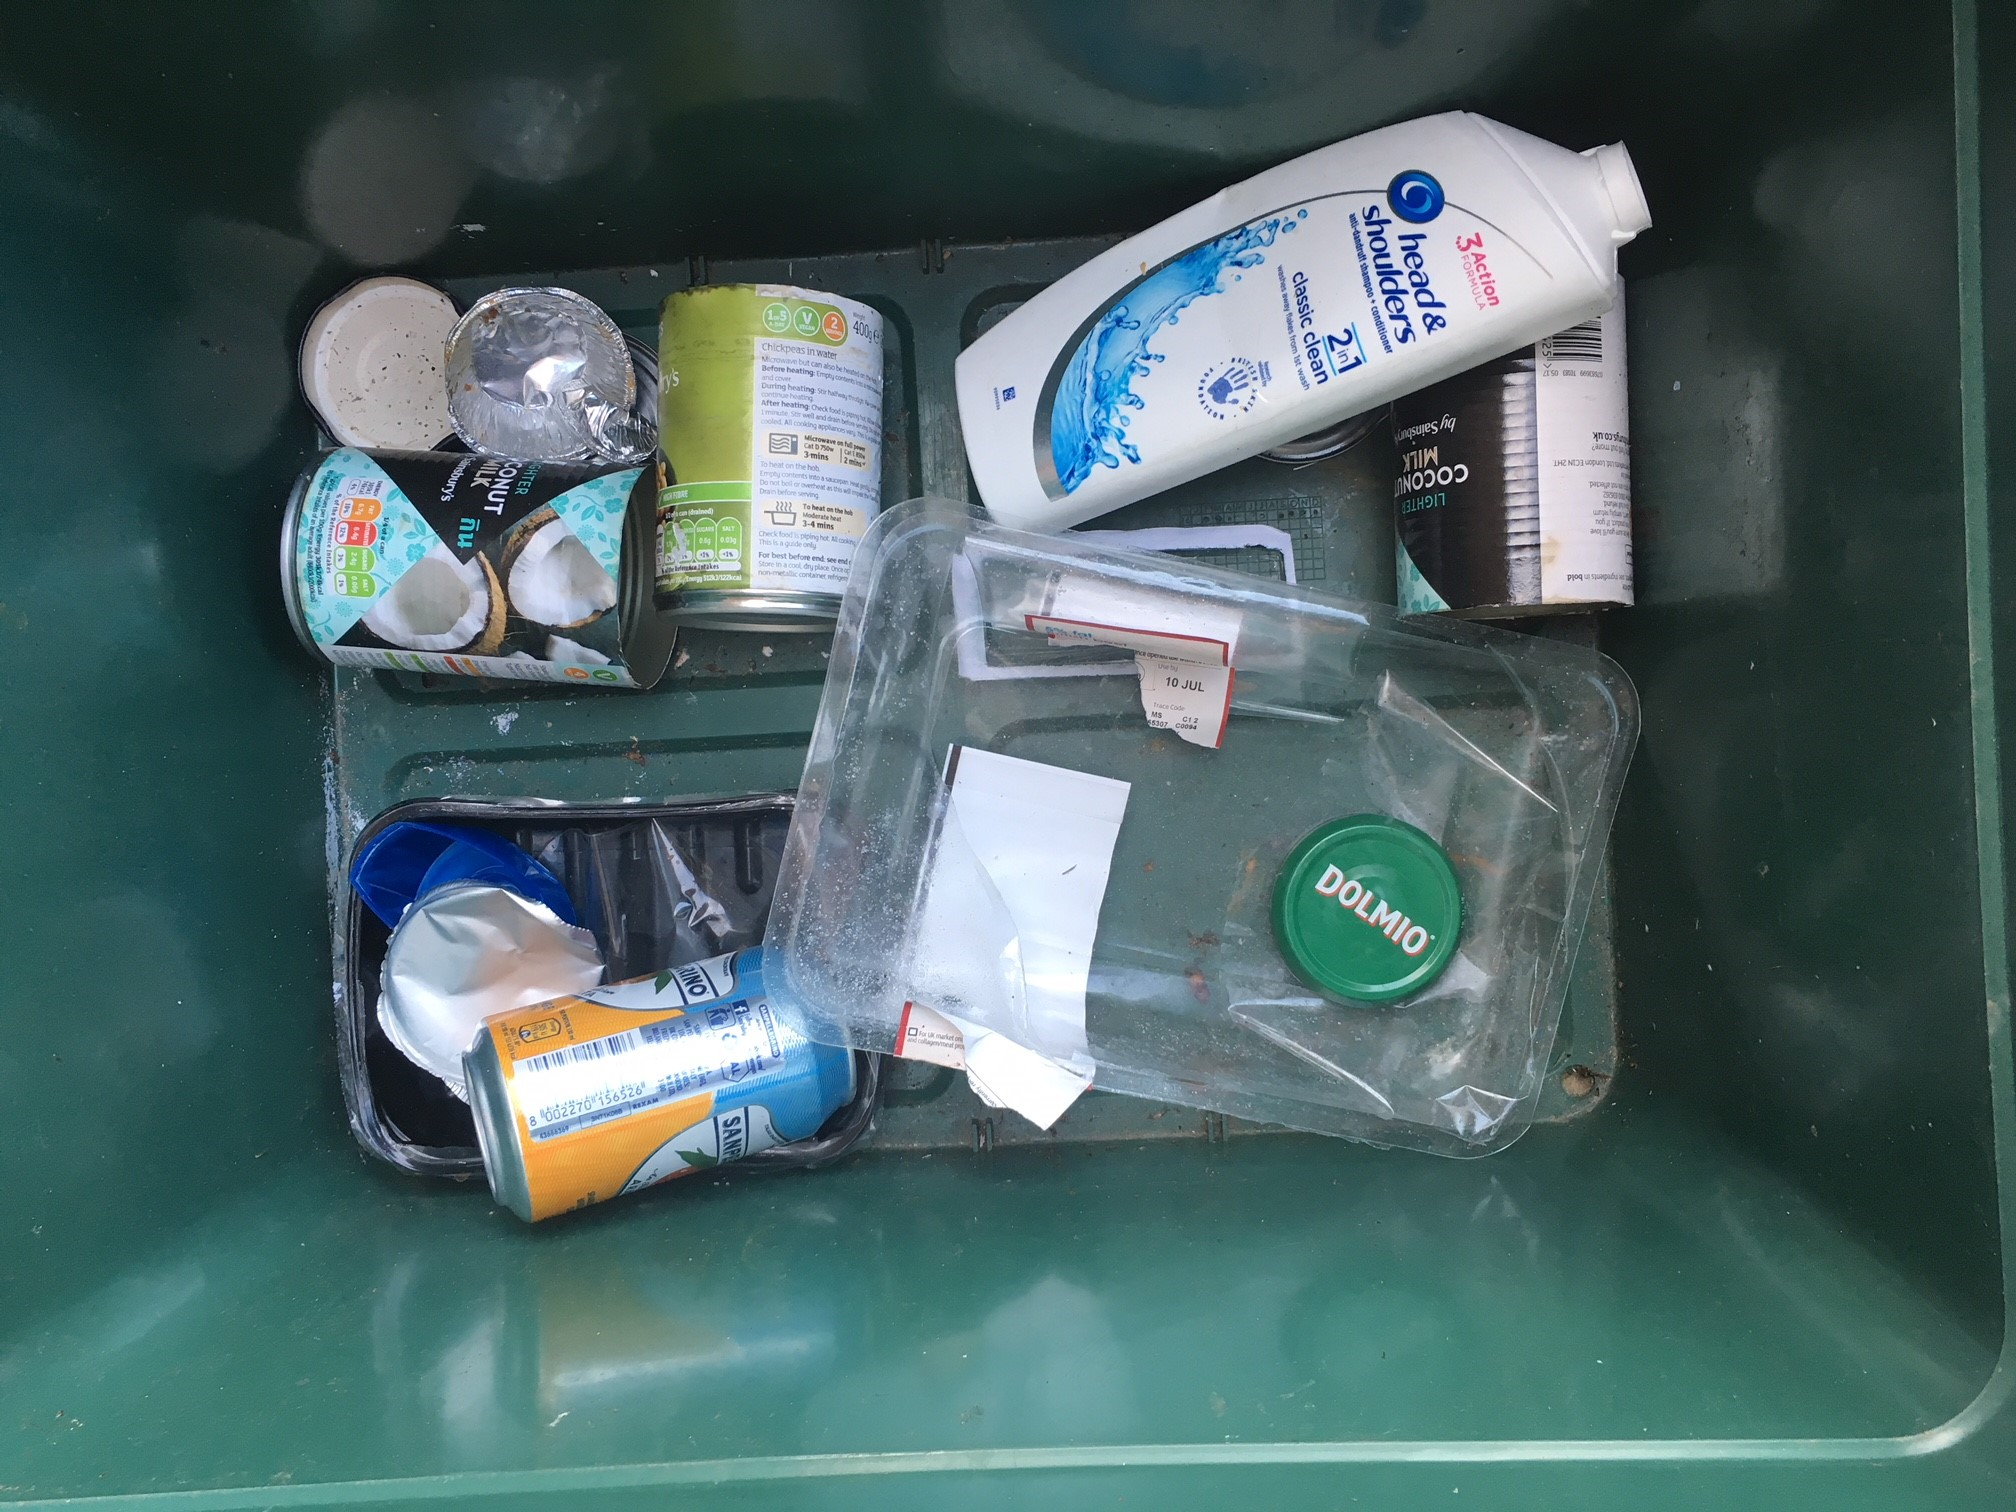 Lack of plastic in a recycling bin